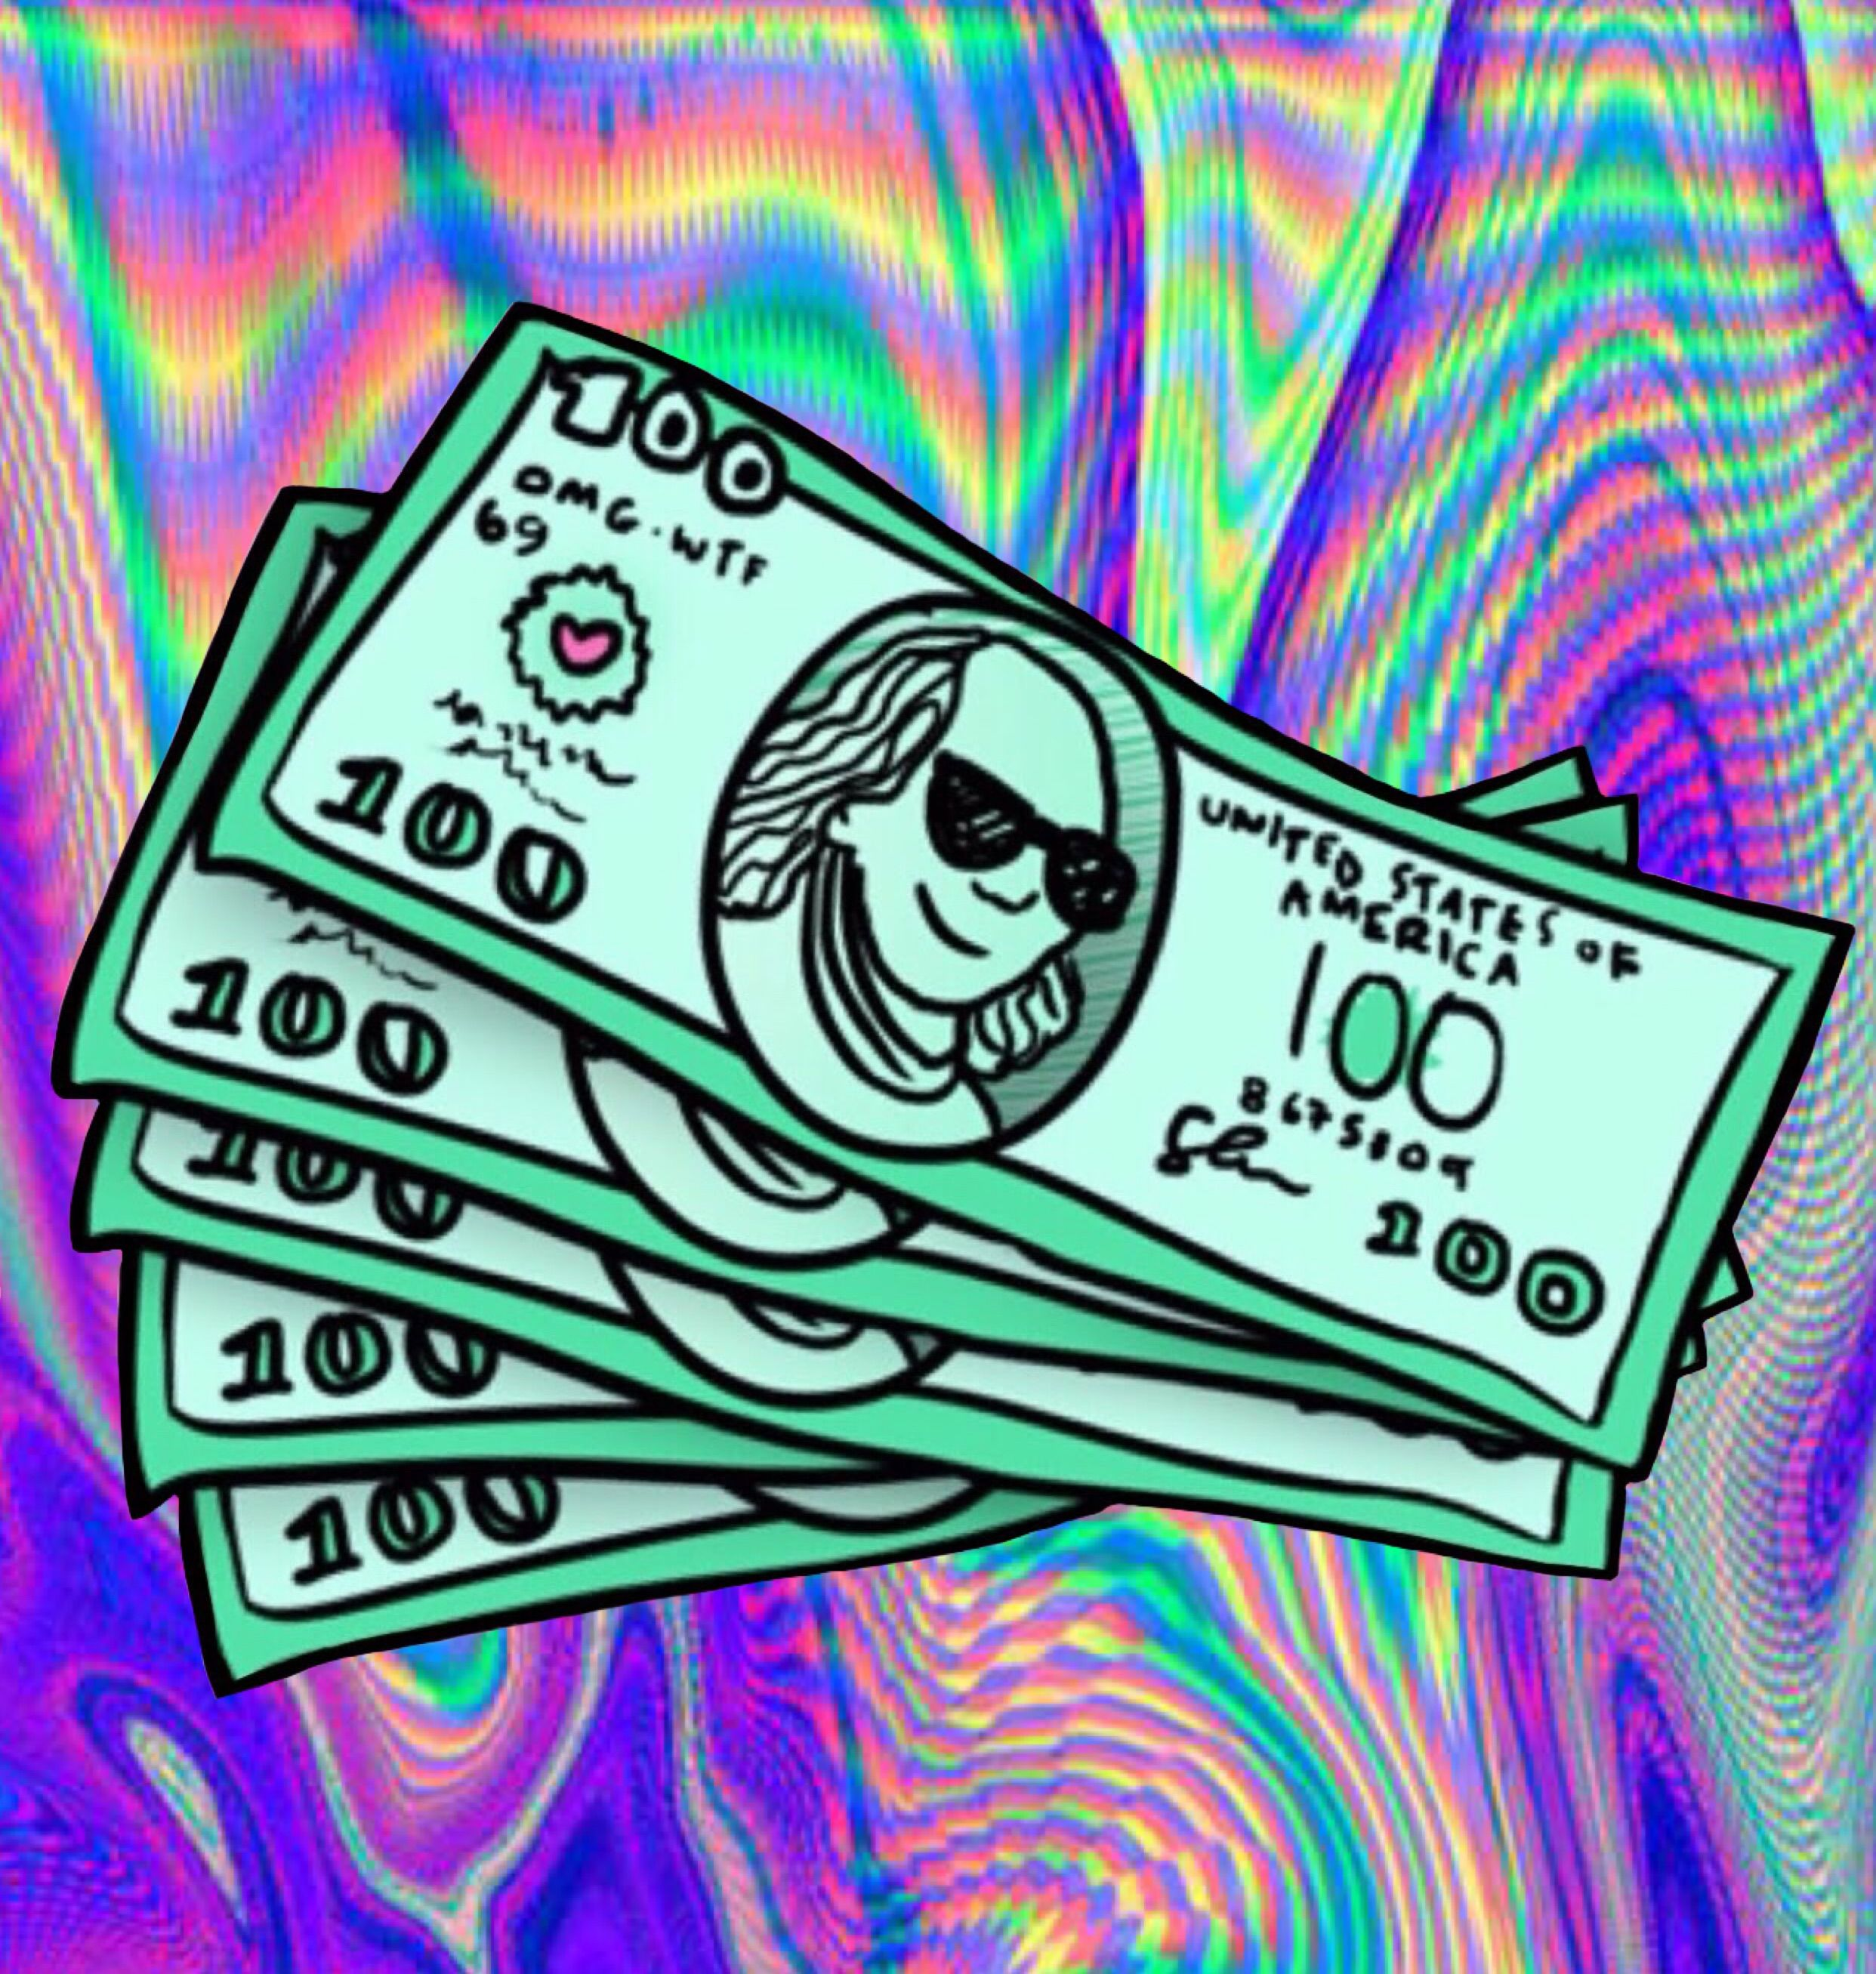 money green drawing edit trippy colorful cool